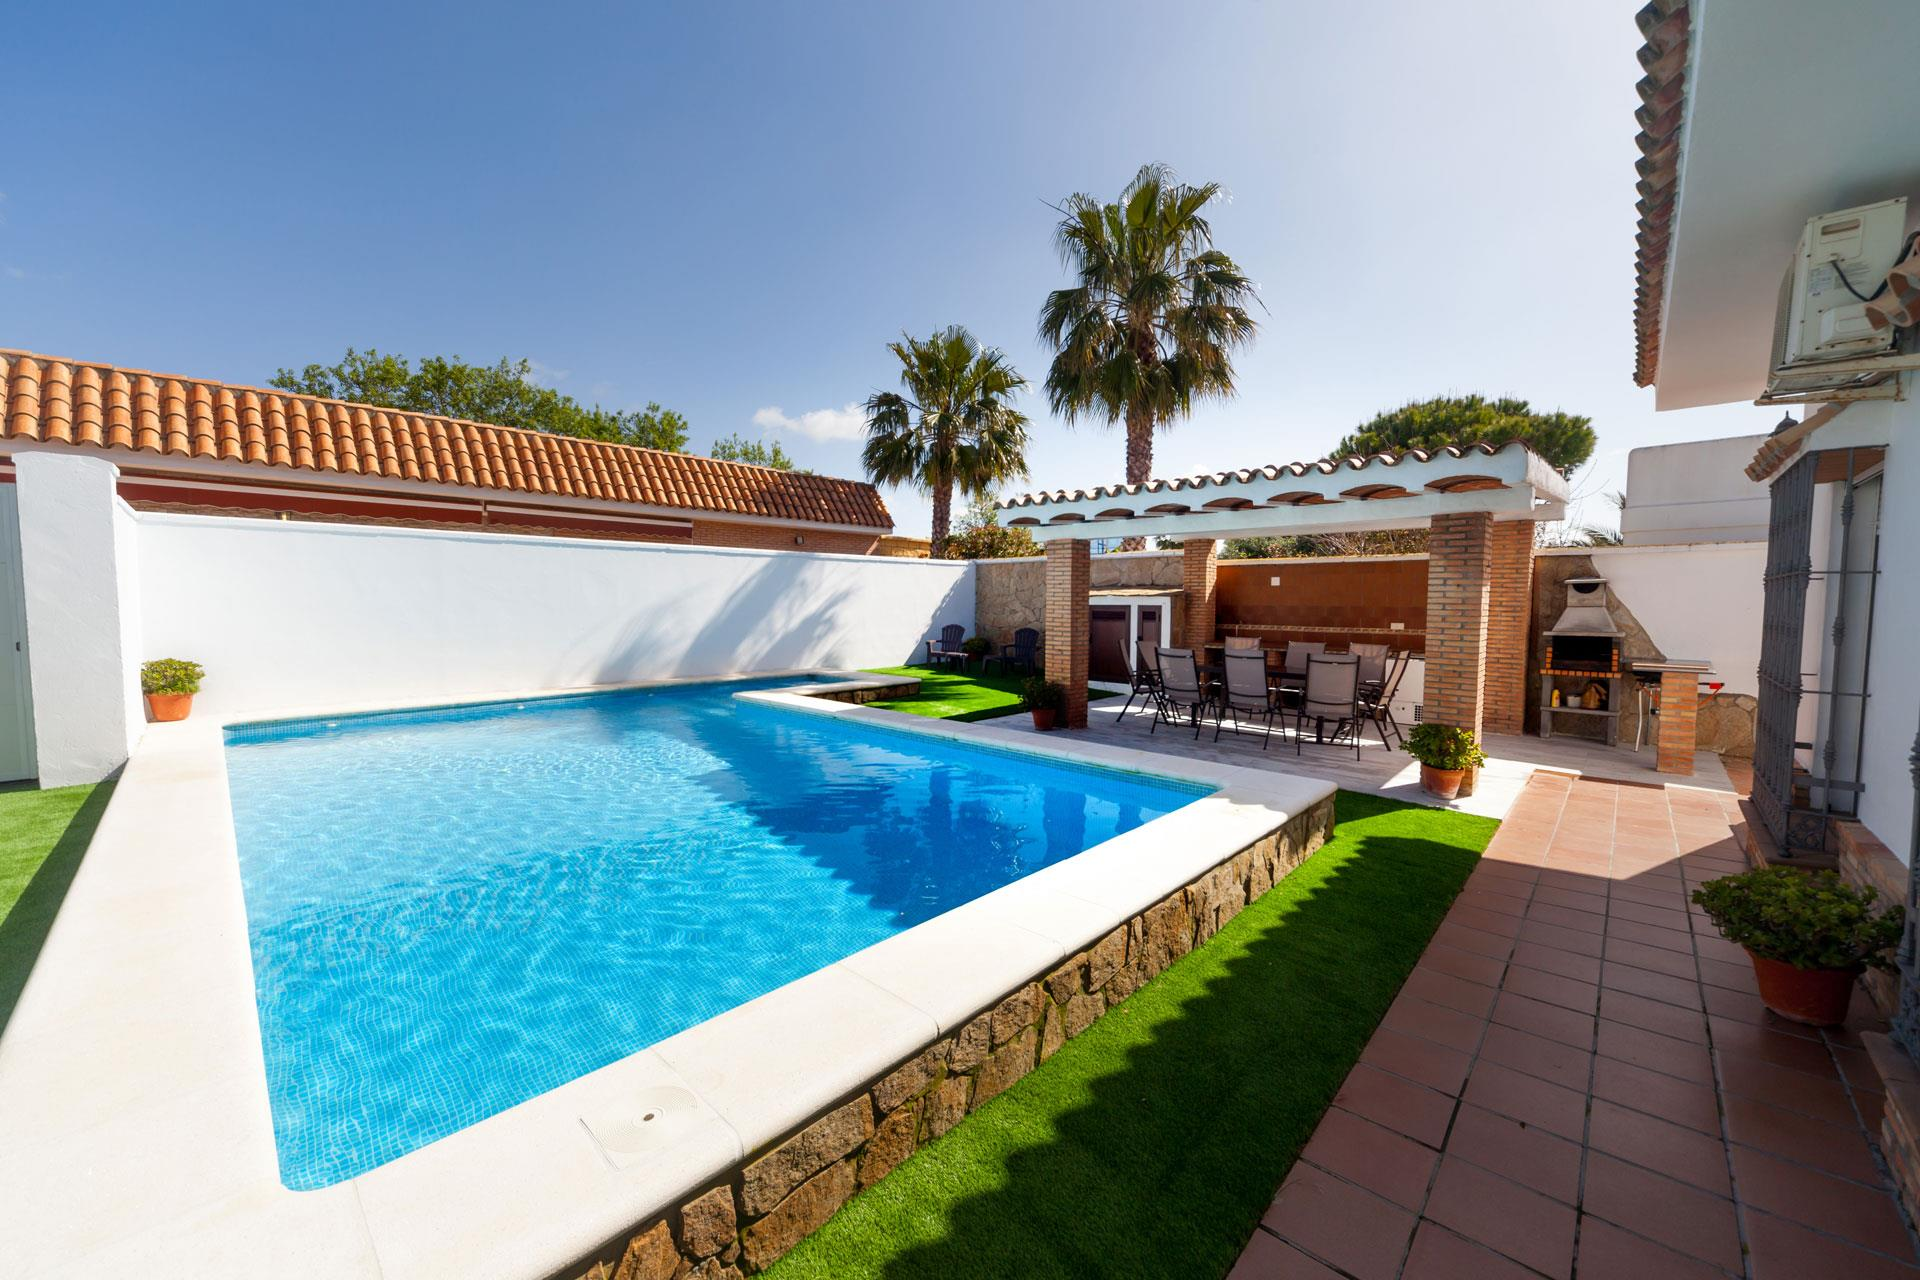 El Molino, Comfortable villa  with private pool in Chiclana de la Frontera, Andalusia, Spain for 10 persons.....